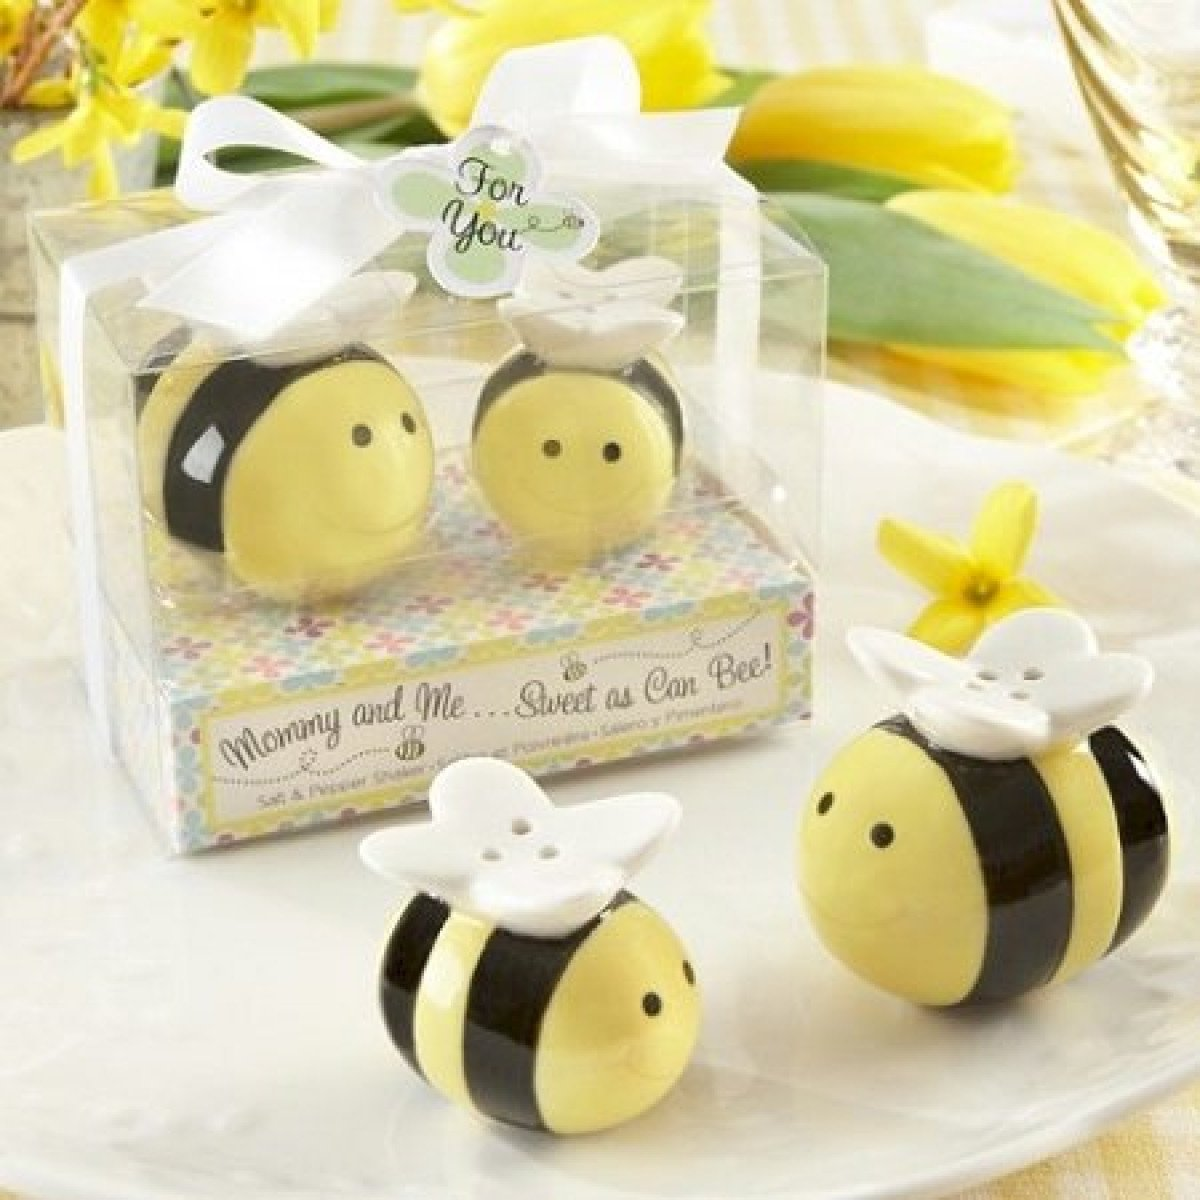 Sweet As Can Bee Salt And Pepper Shakers